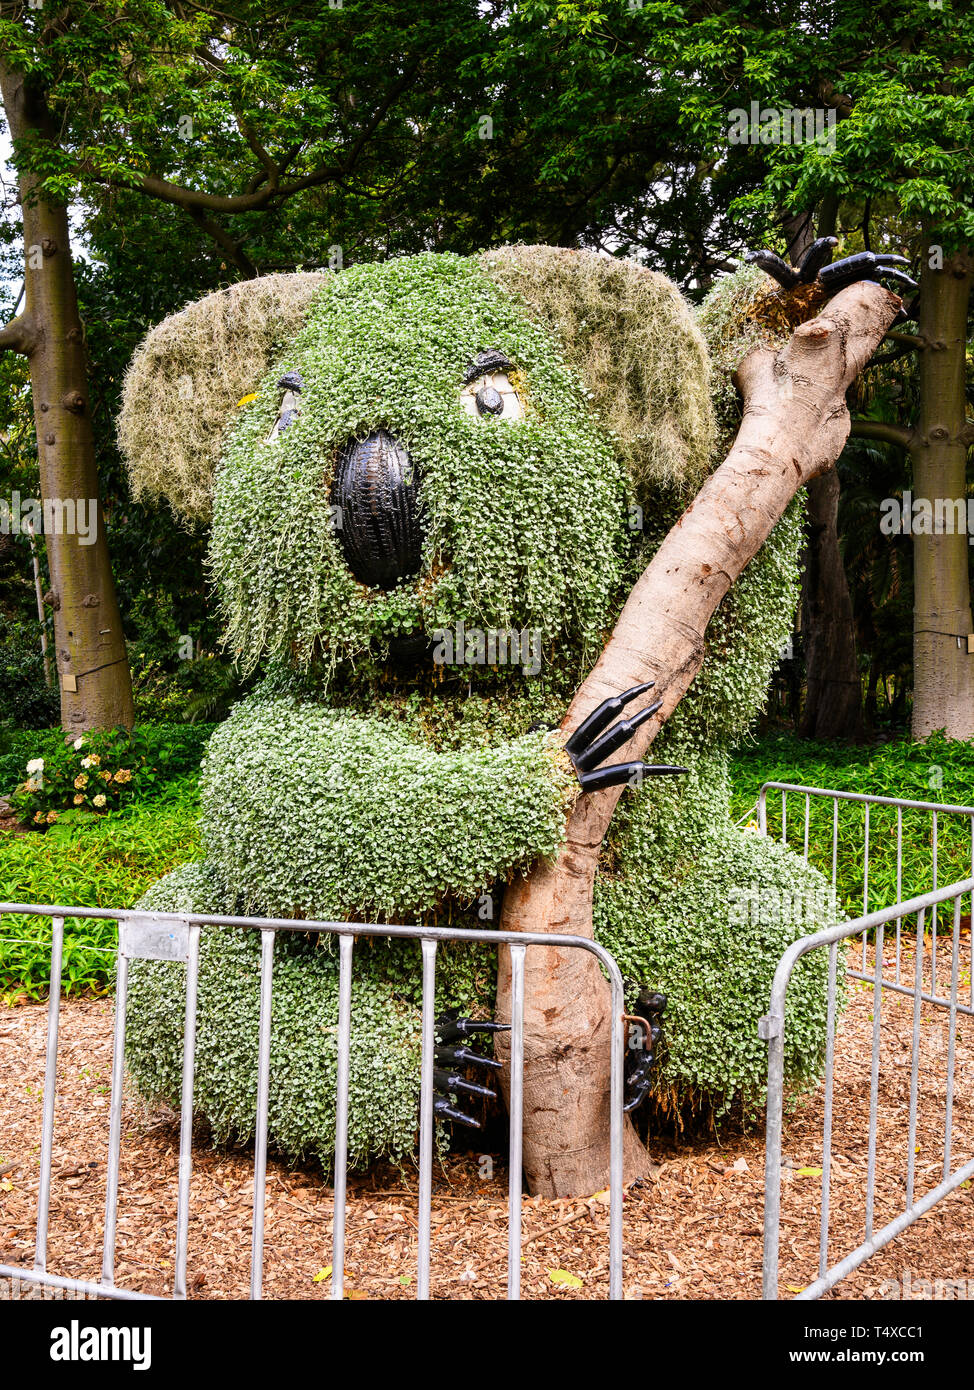 Topiary koala bear at The Royal Botanic Garden, 74 acres adjacent to the central business district of Sydney, New South Wales, Australia. Stock Photo